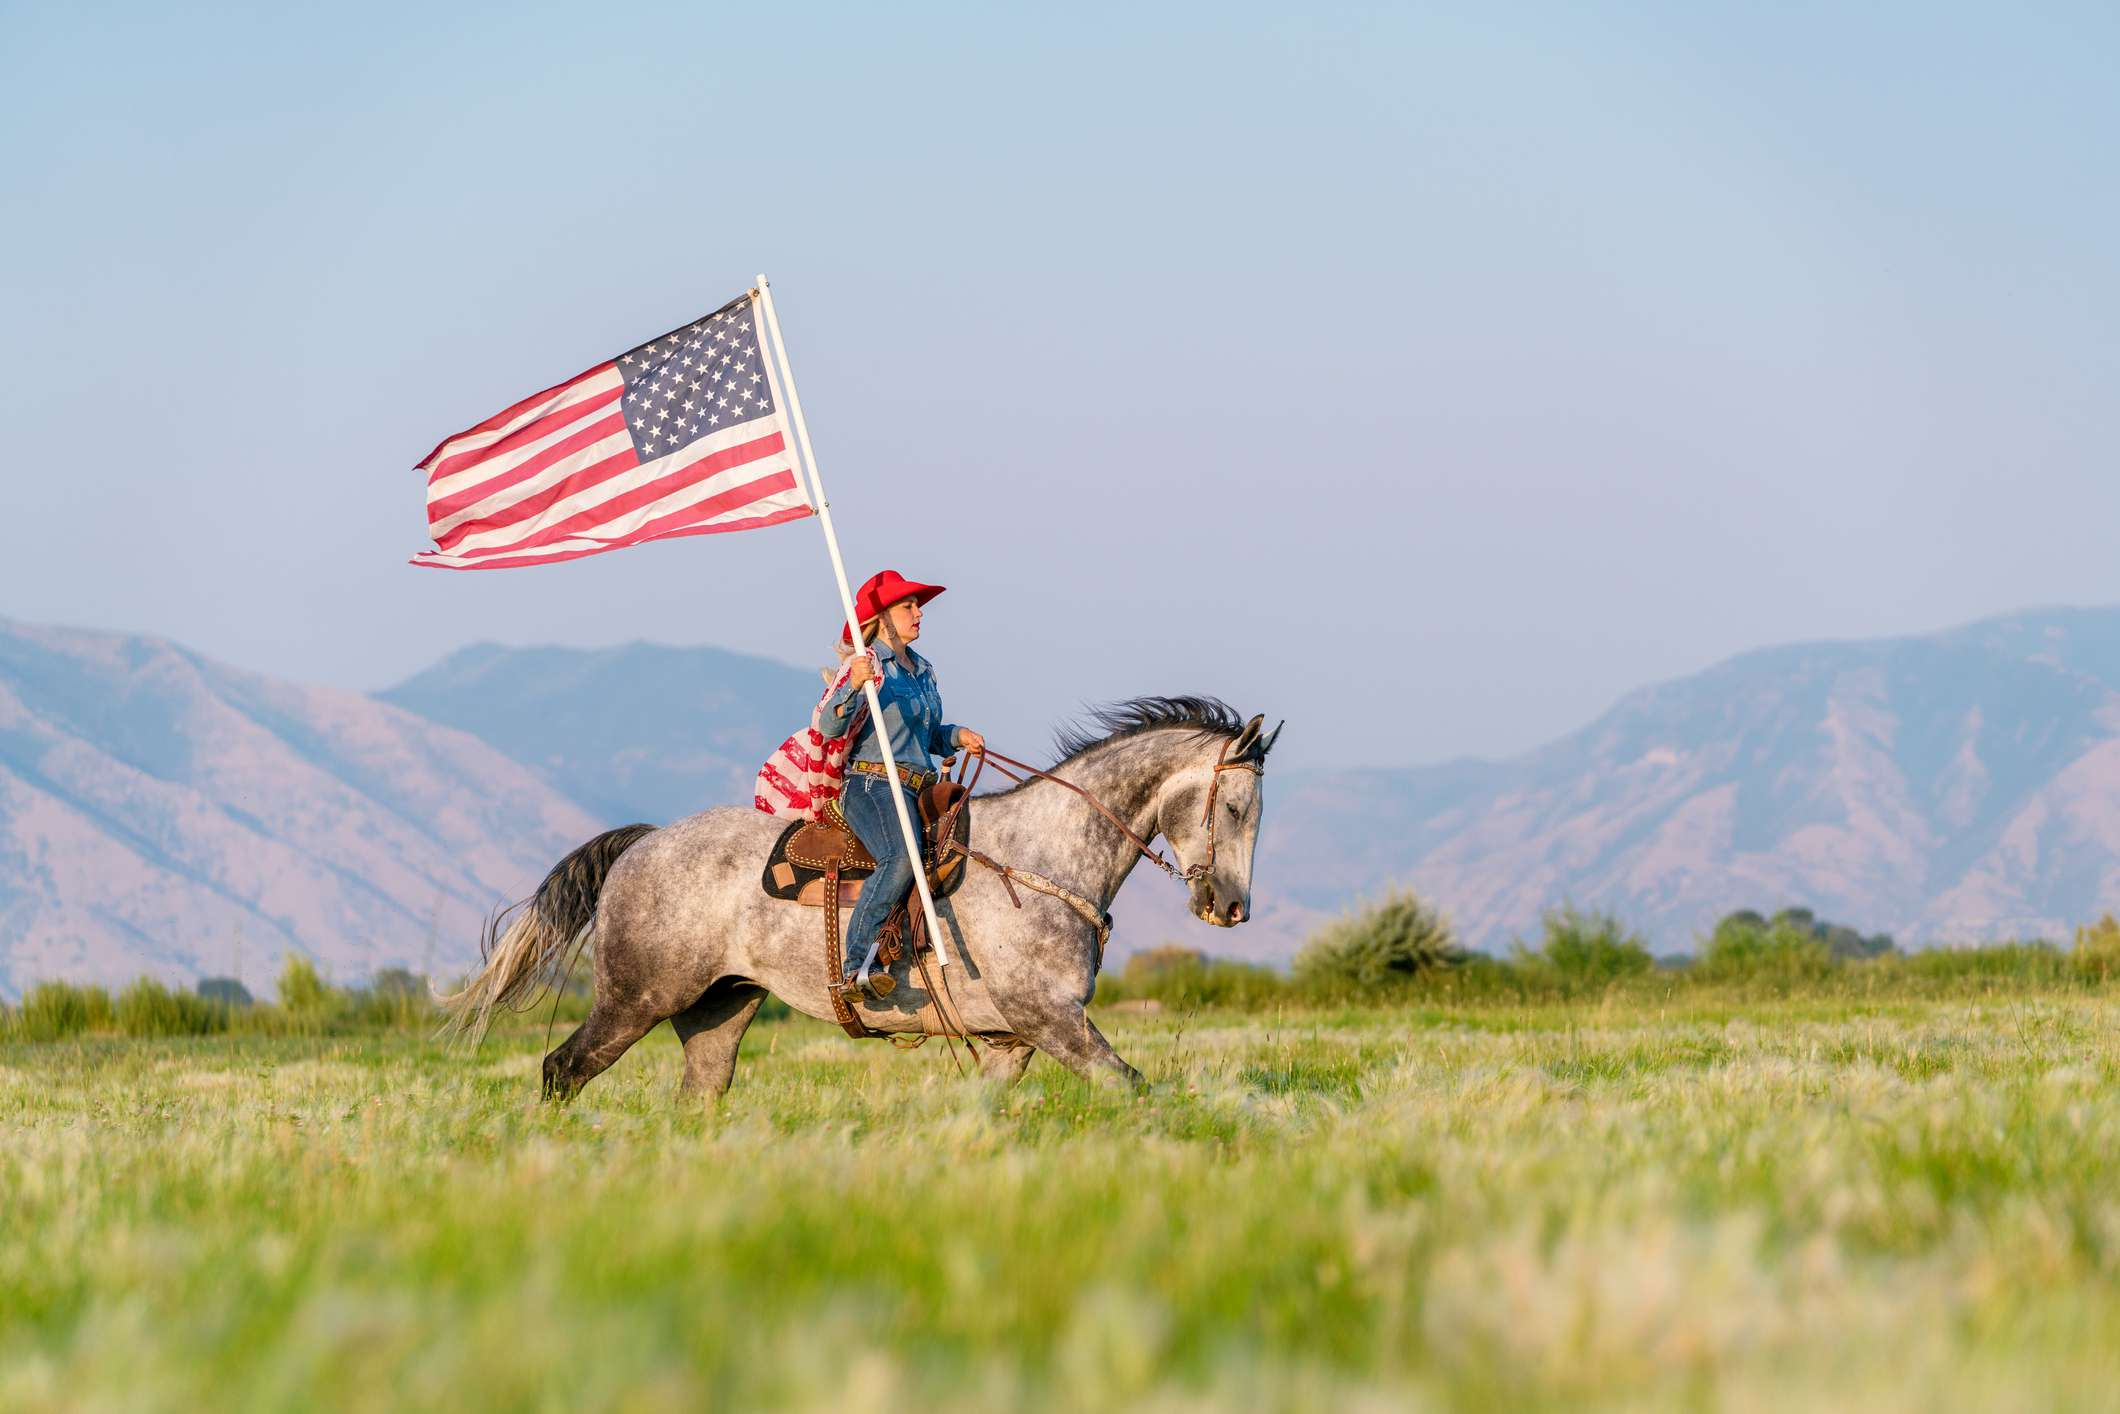 Young cowgirl wearing an American flag riding a horse